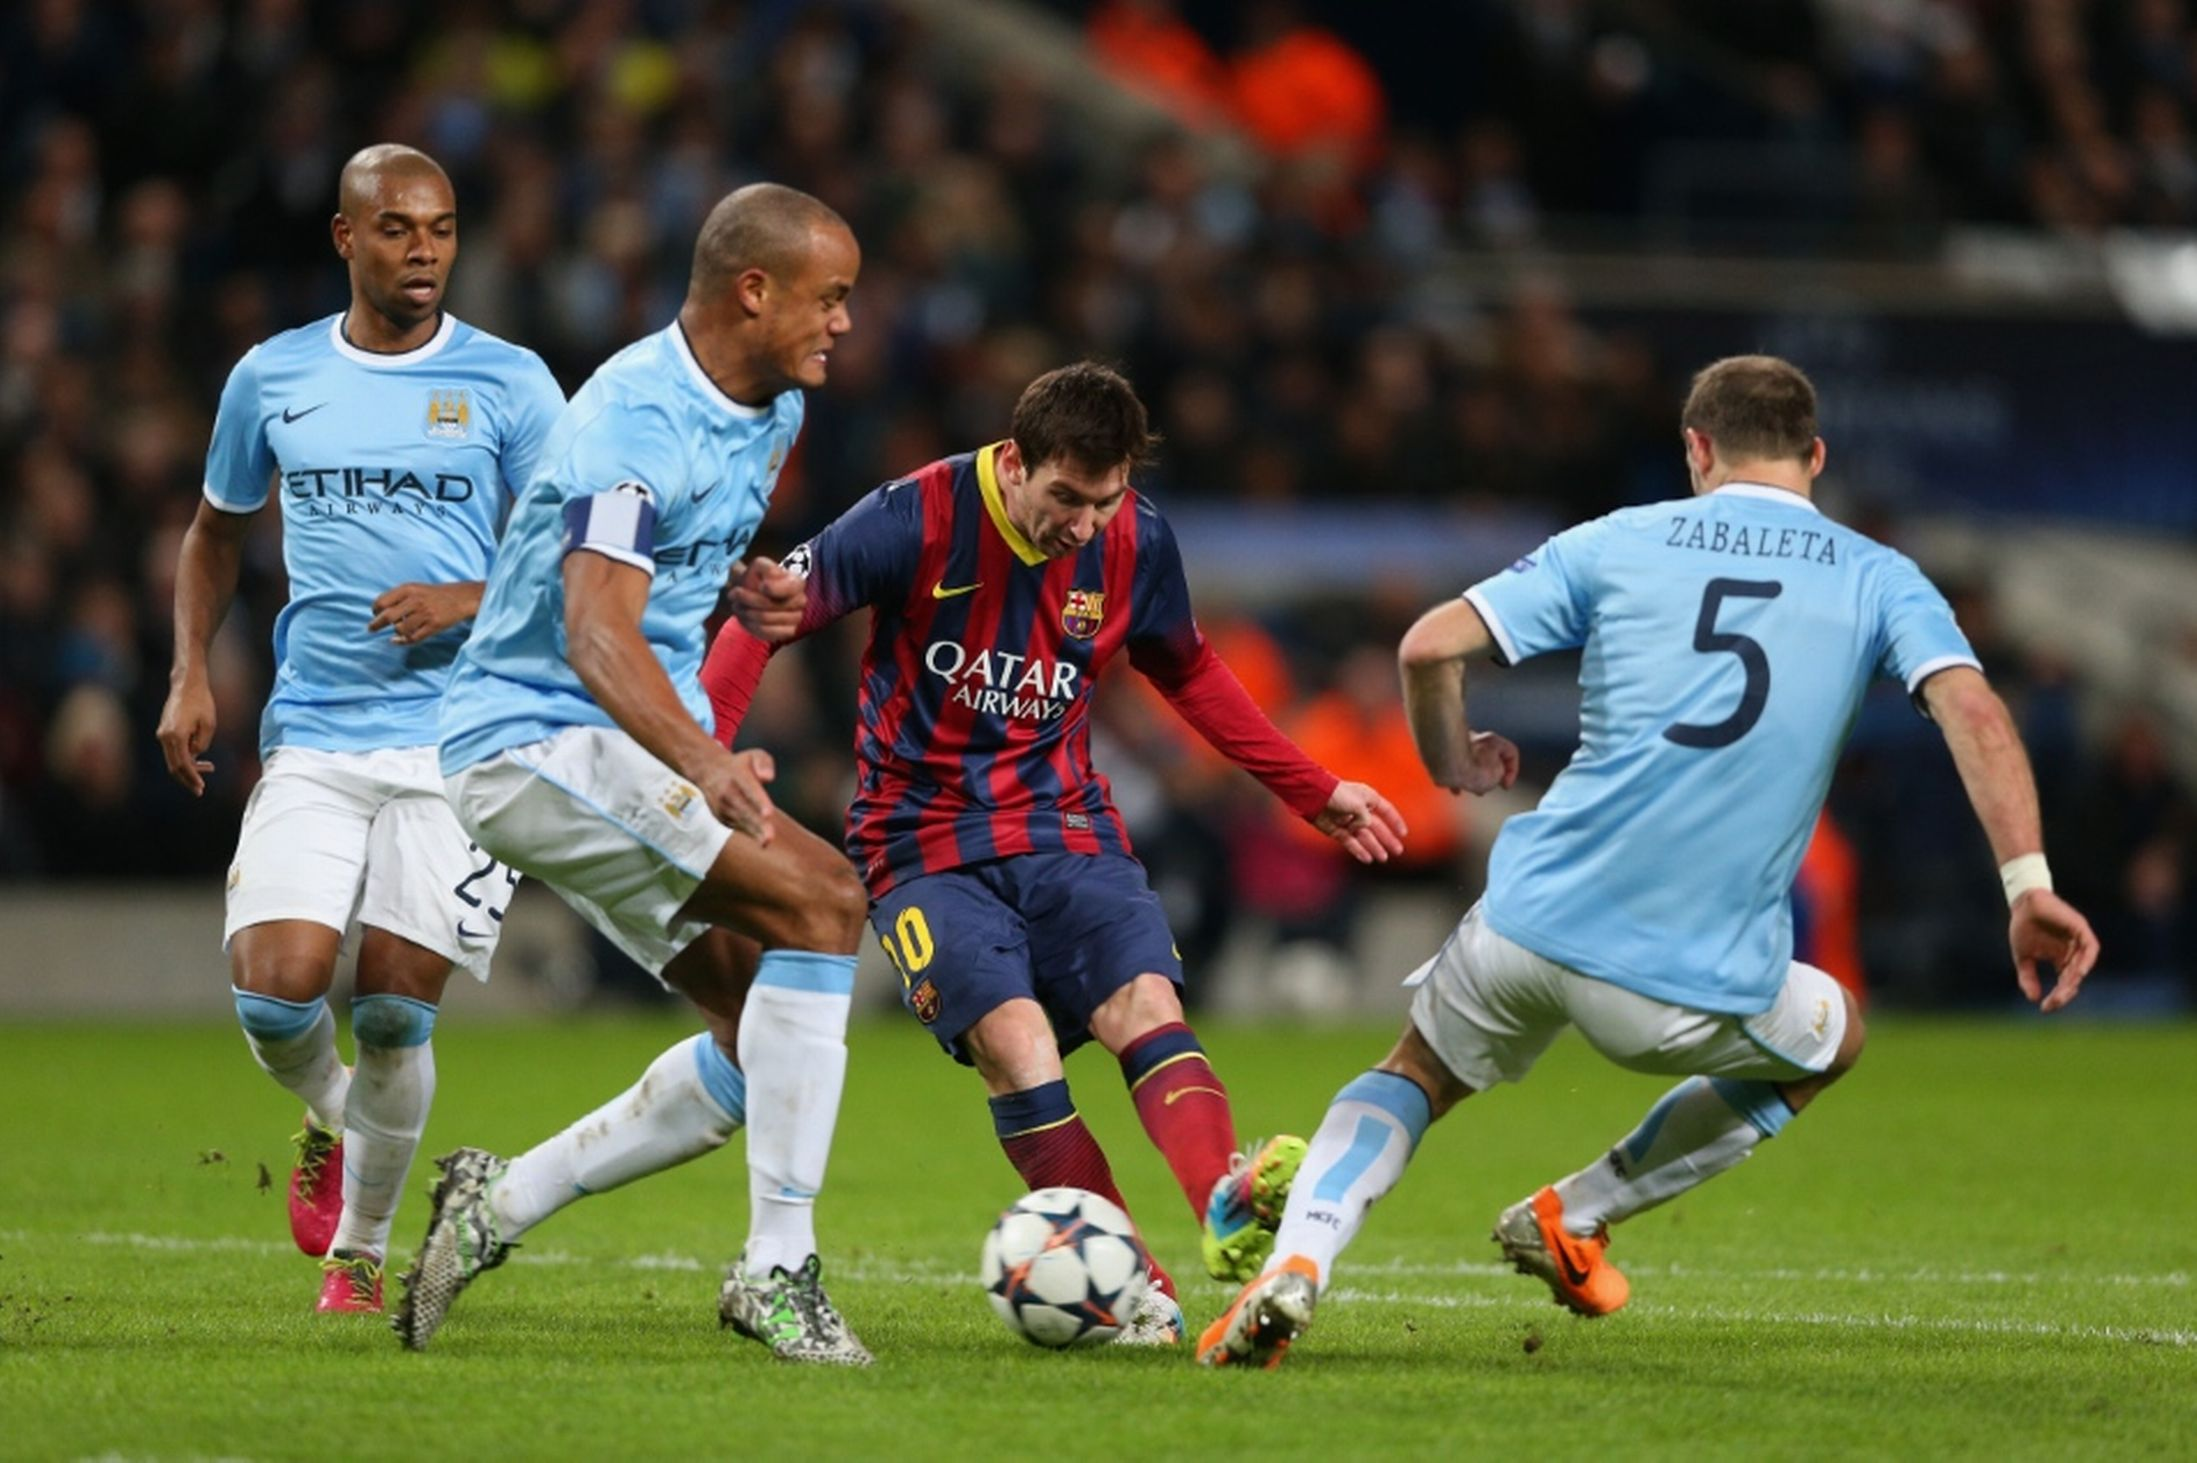 Man city v barcelona betting tips financial spread betting in the us